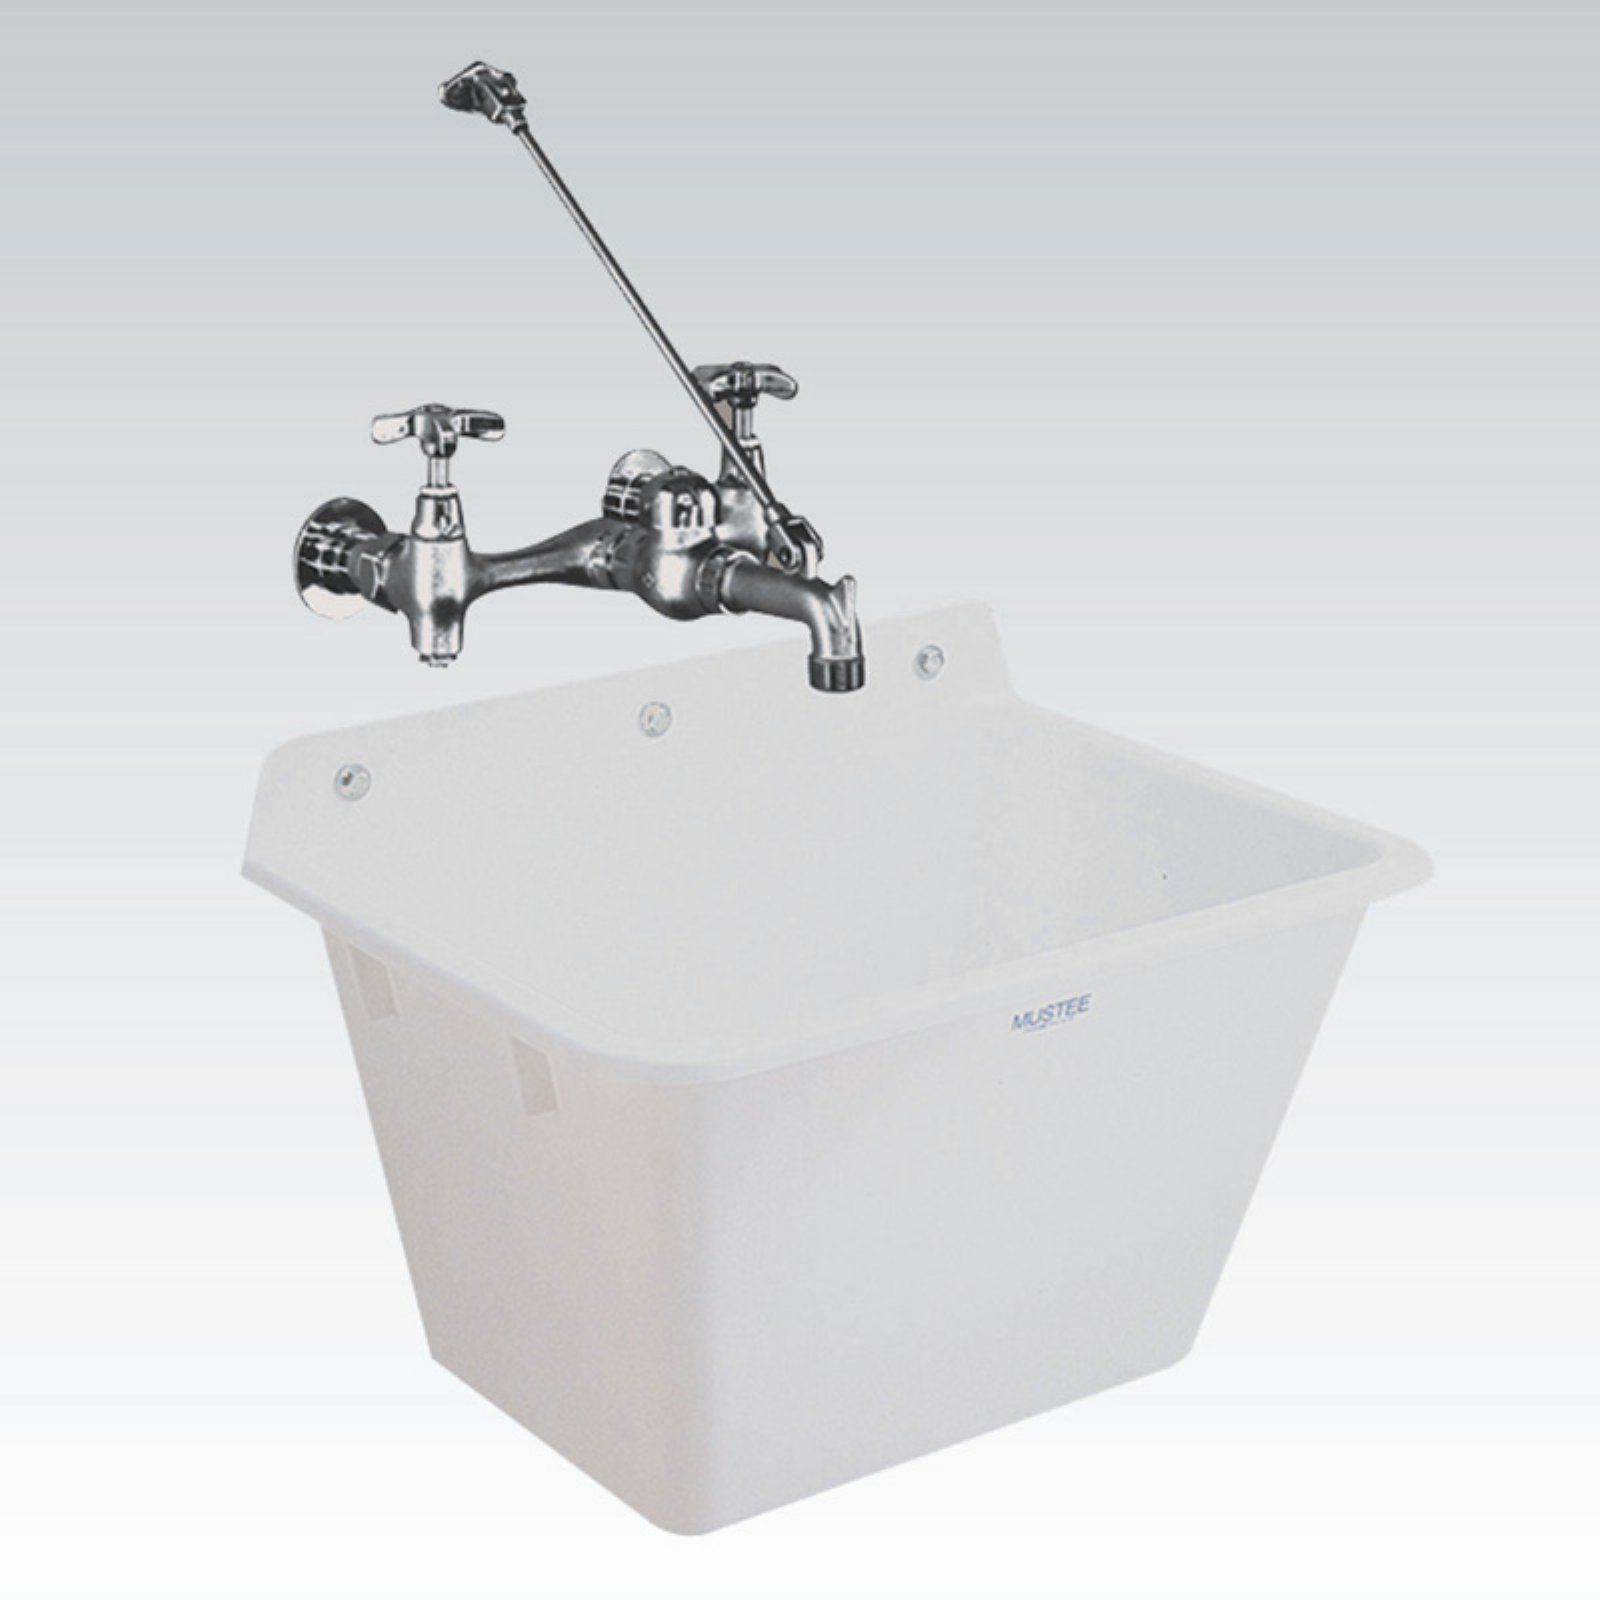 Mustee Utilatub 16 Single Basin Wall Mount Utility Sink Utility